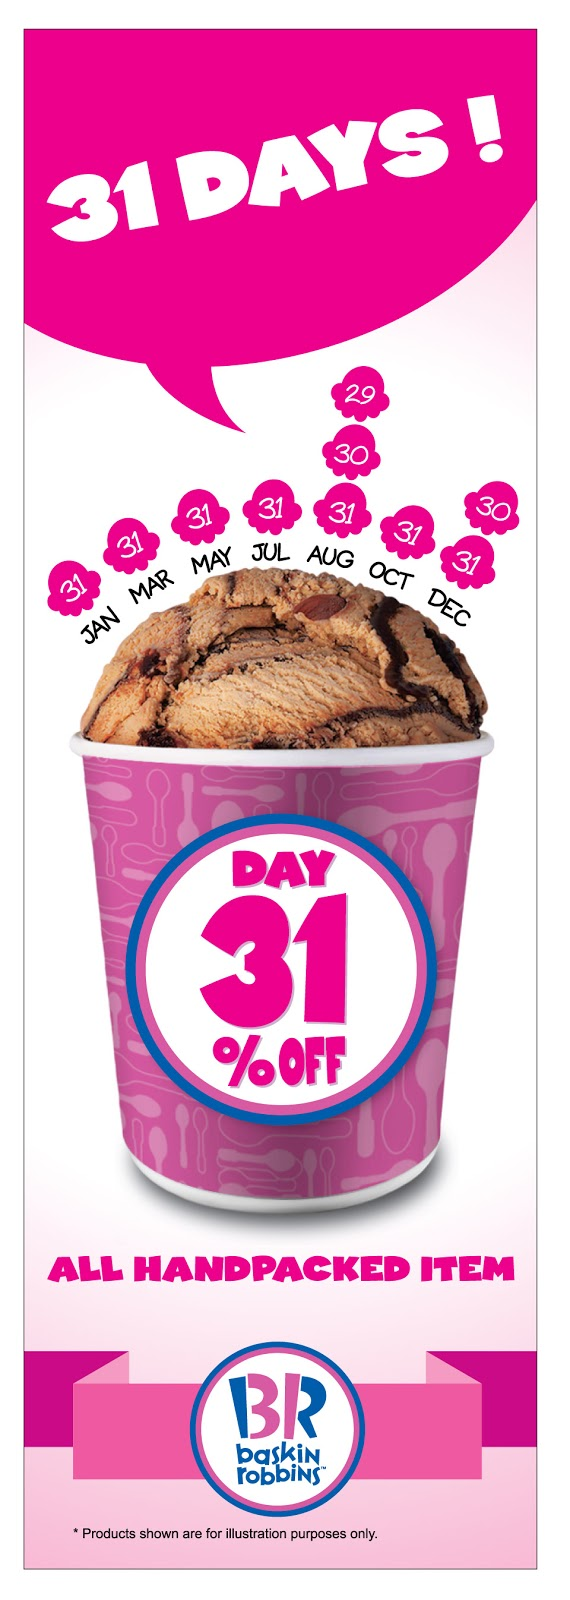 Baskin-Robbins Malaysia Discount Promotion